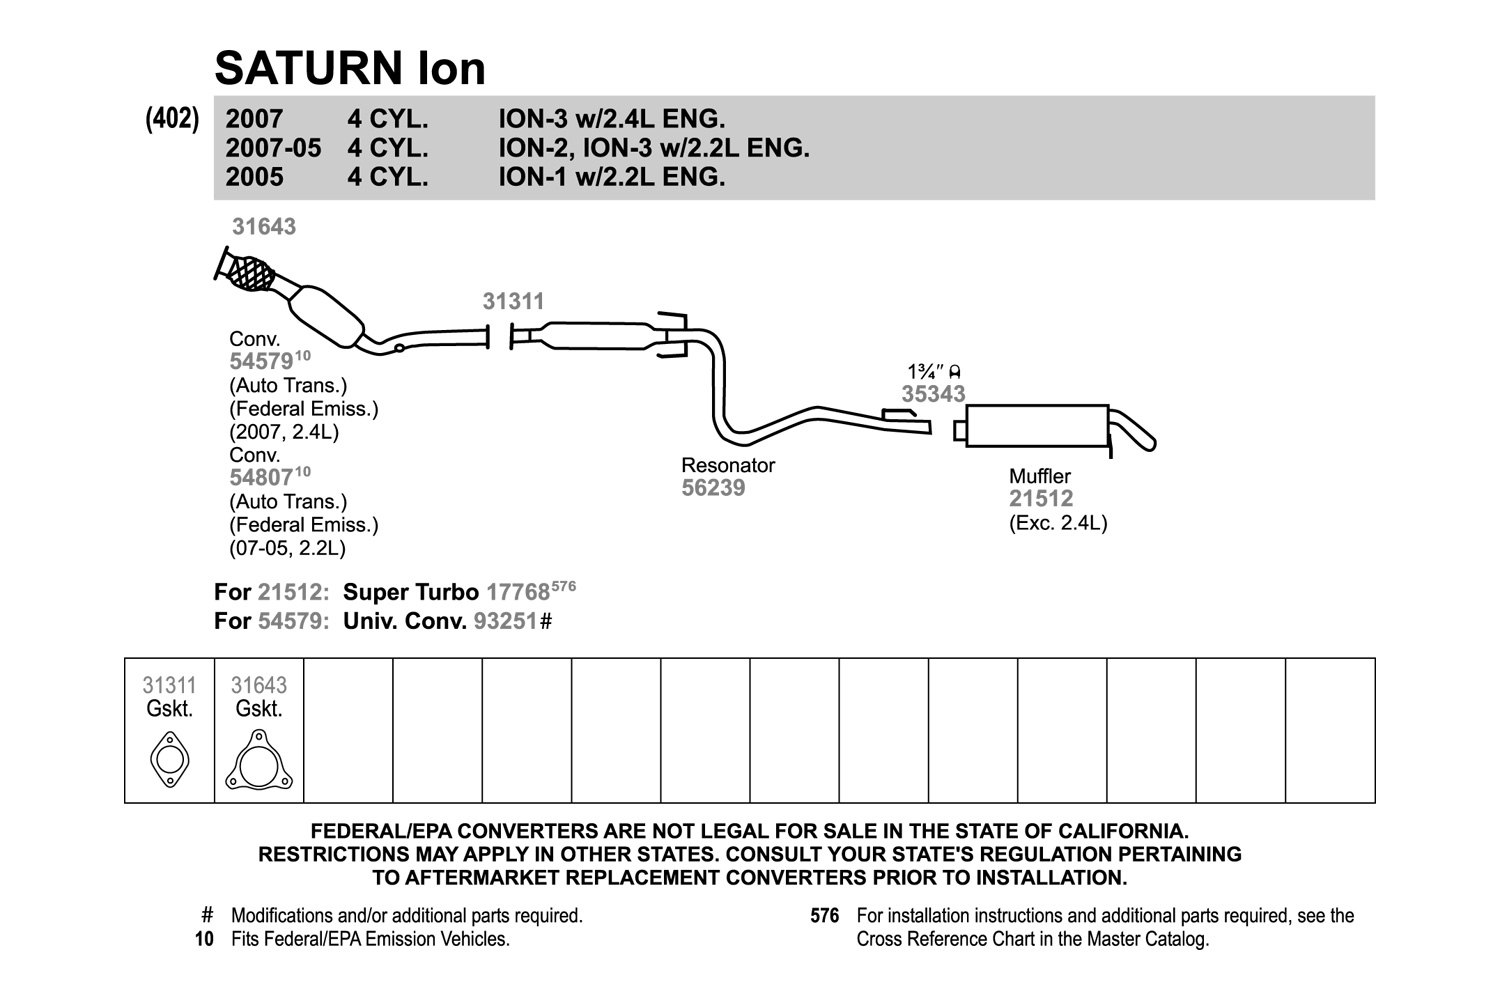 hight resolution of saturn exhaust diagram schema diagram databasesaturn ion exhaust diagram wiring diagram operations 2005 saturn ion exhaust